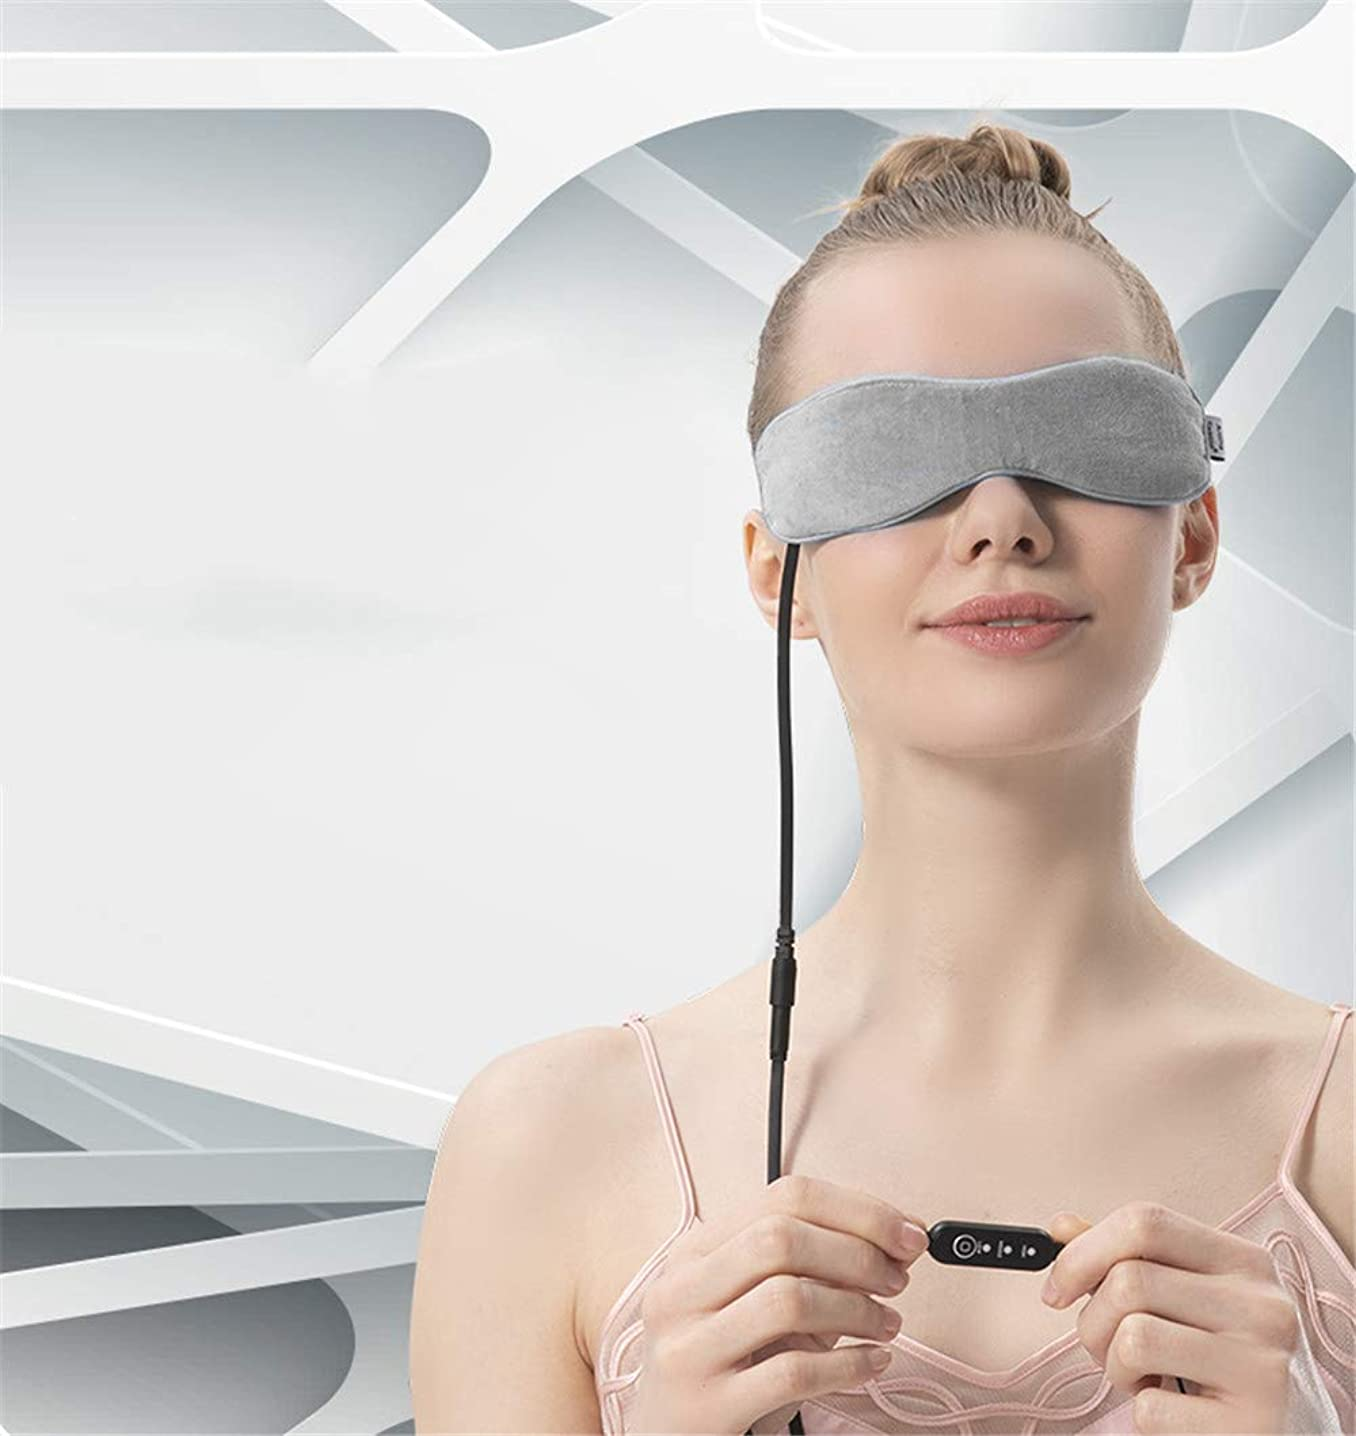 Xinrangxin USB Steam Eye Mask, Fast, Simple, Effective Treatment of Blepharitis, with Time and Temperature Control, Relieves Edema Eyes, Relieves Dry Eye Syndrome, Dry Eye and Tired Eyes (Gray)